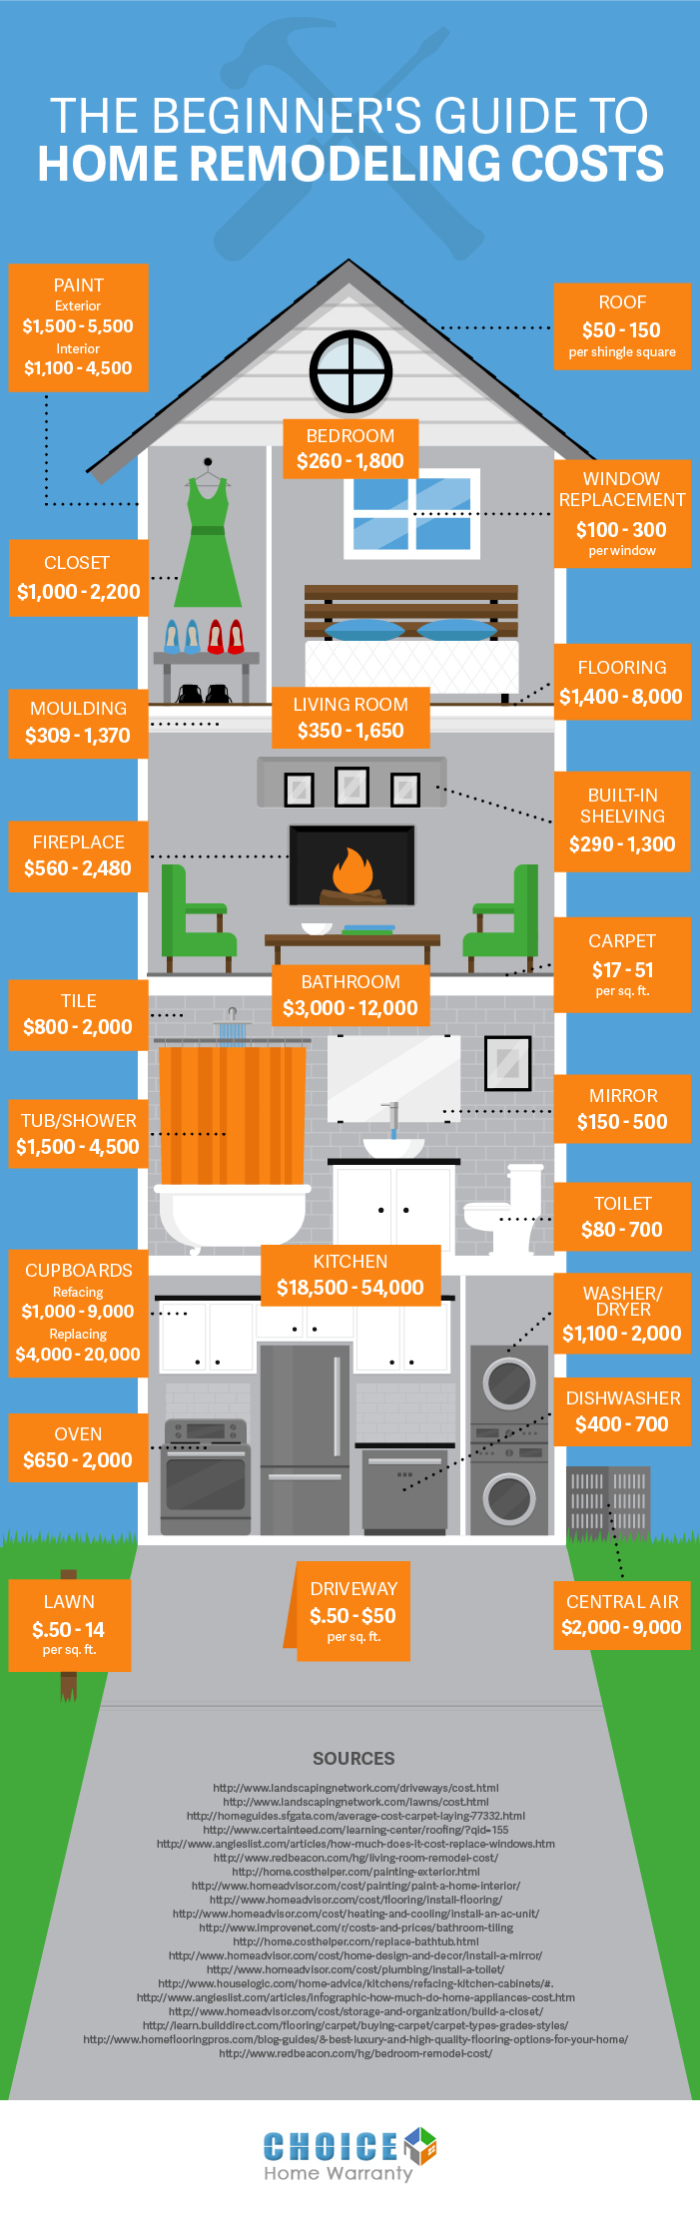 home-remodeling-guide